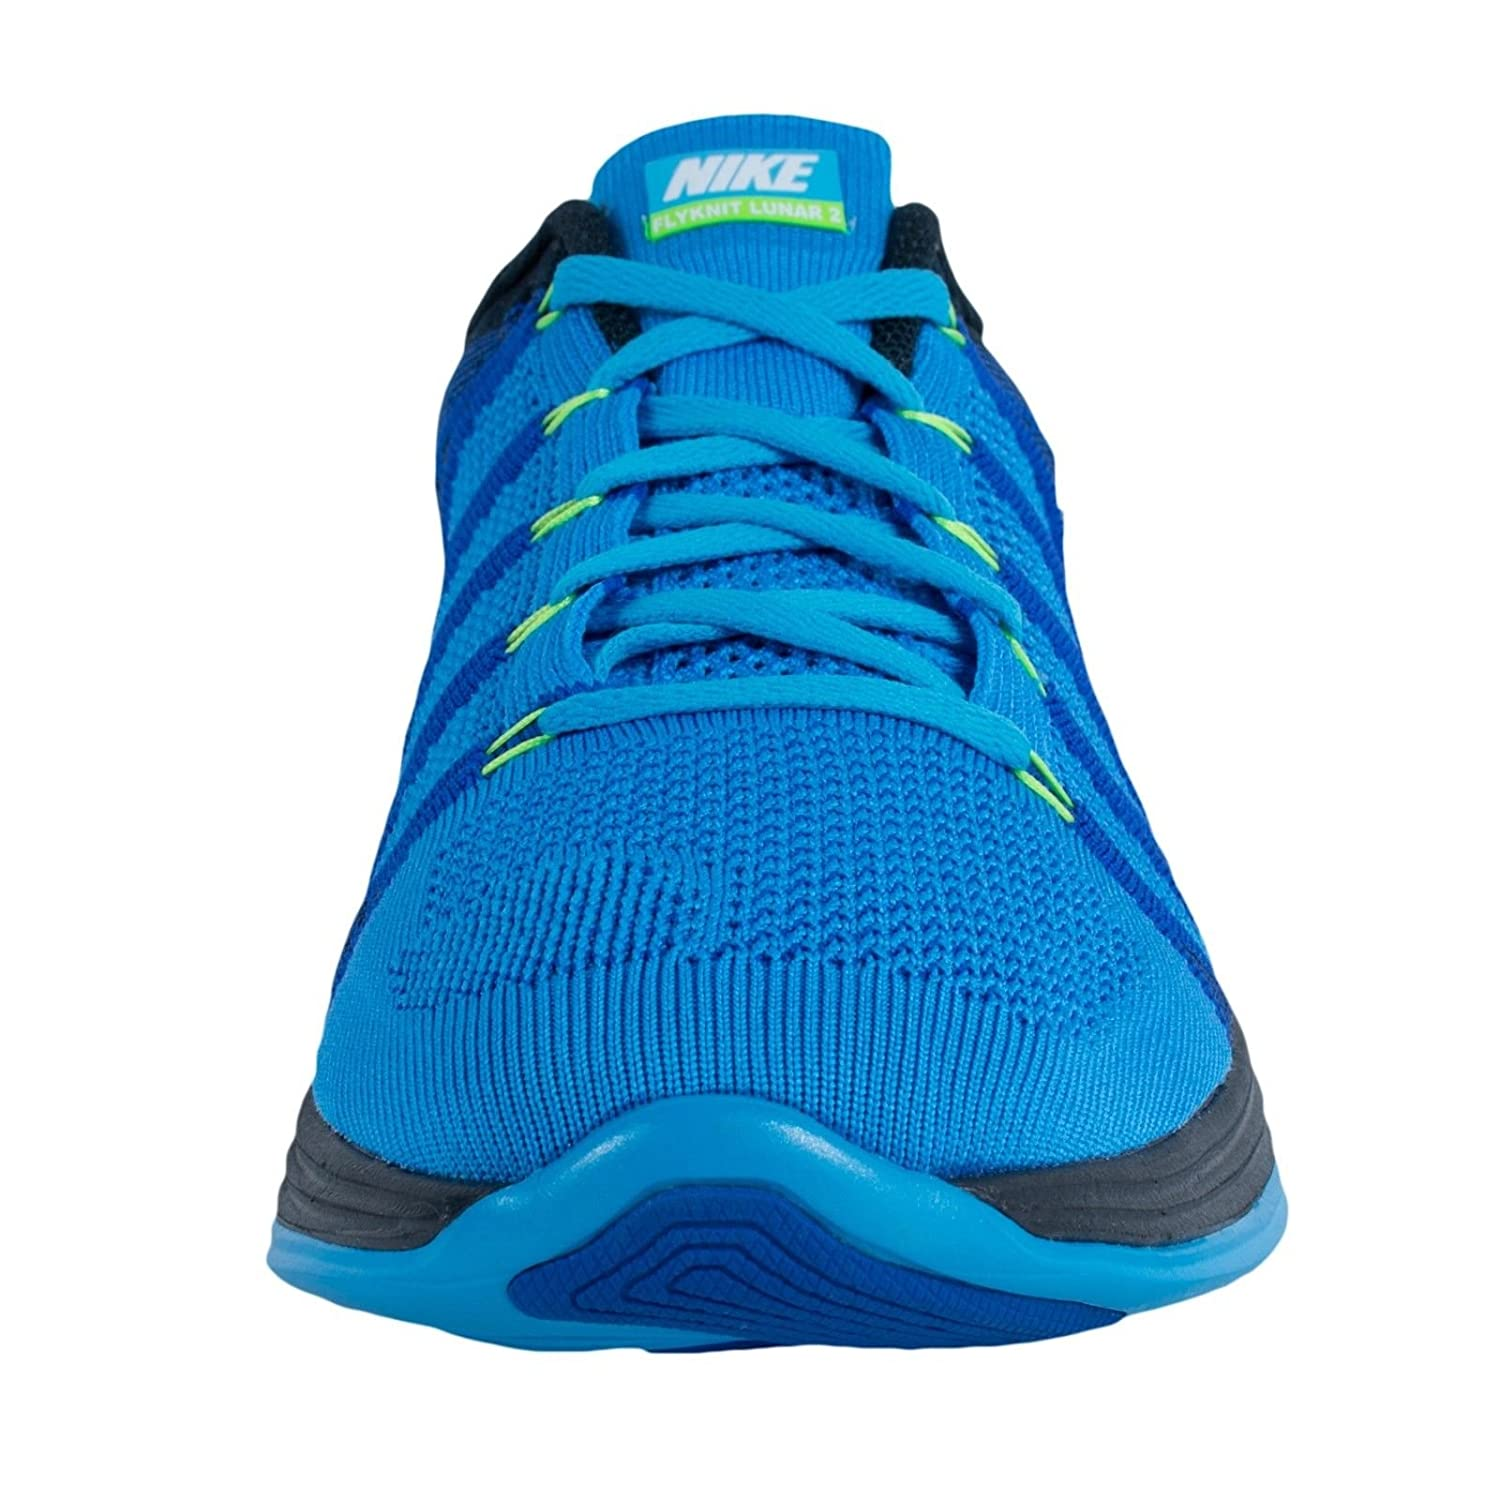 sports shoes 86dae f19a2 Nike Flyknit Lunar2 Mens Running Shoes 620465-414 Vivid Blue White-Game  Royal-Dark Obsidian 12 M US  Buy Online at Low Prices in India - Amazon.in